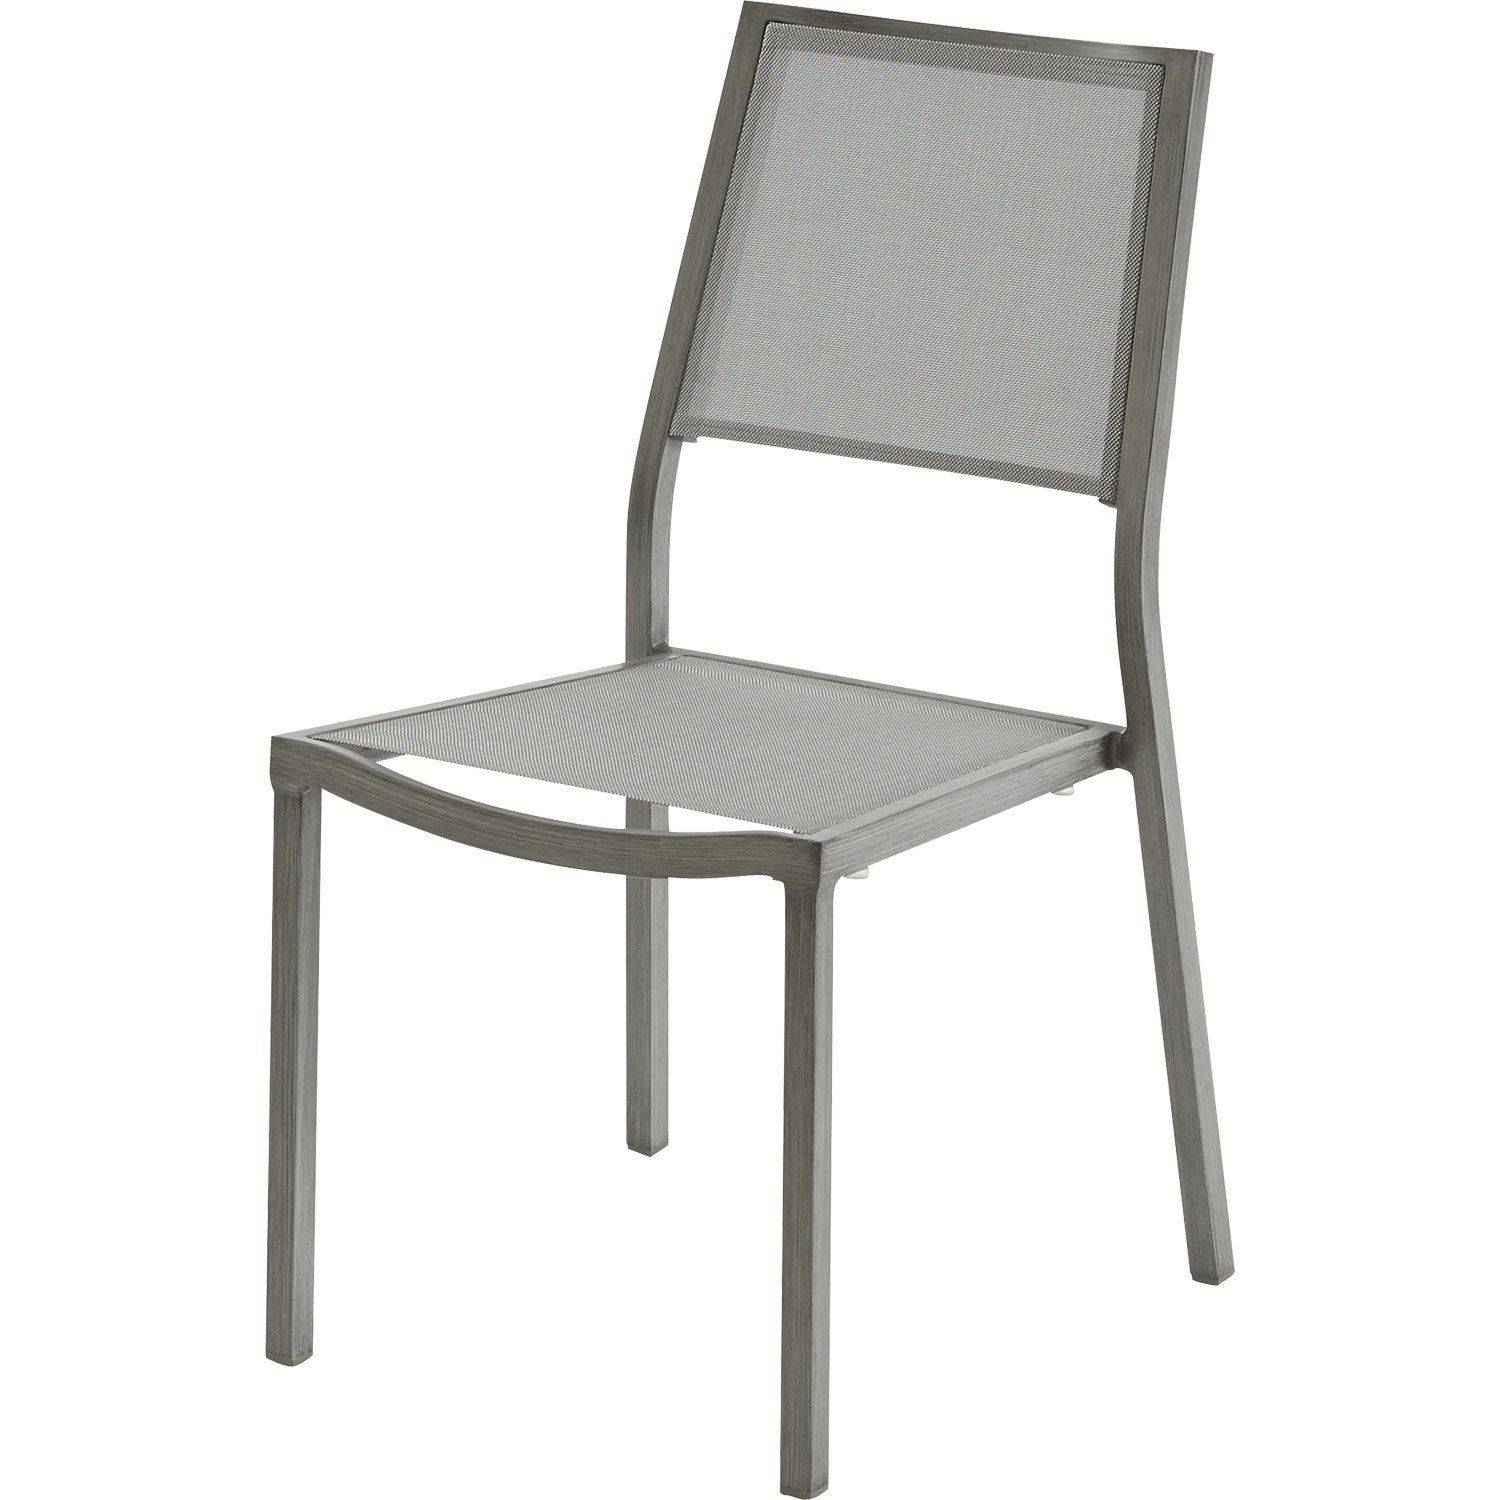 Chaise aluminium jardin for Chaise jardin